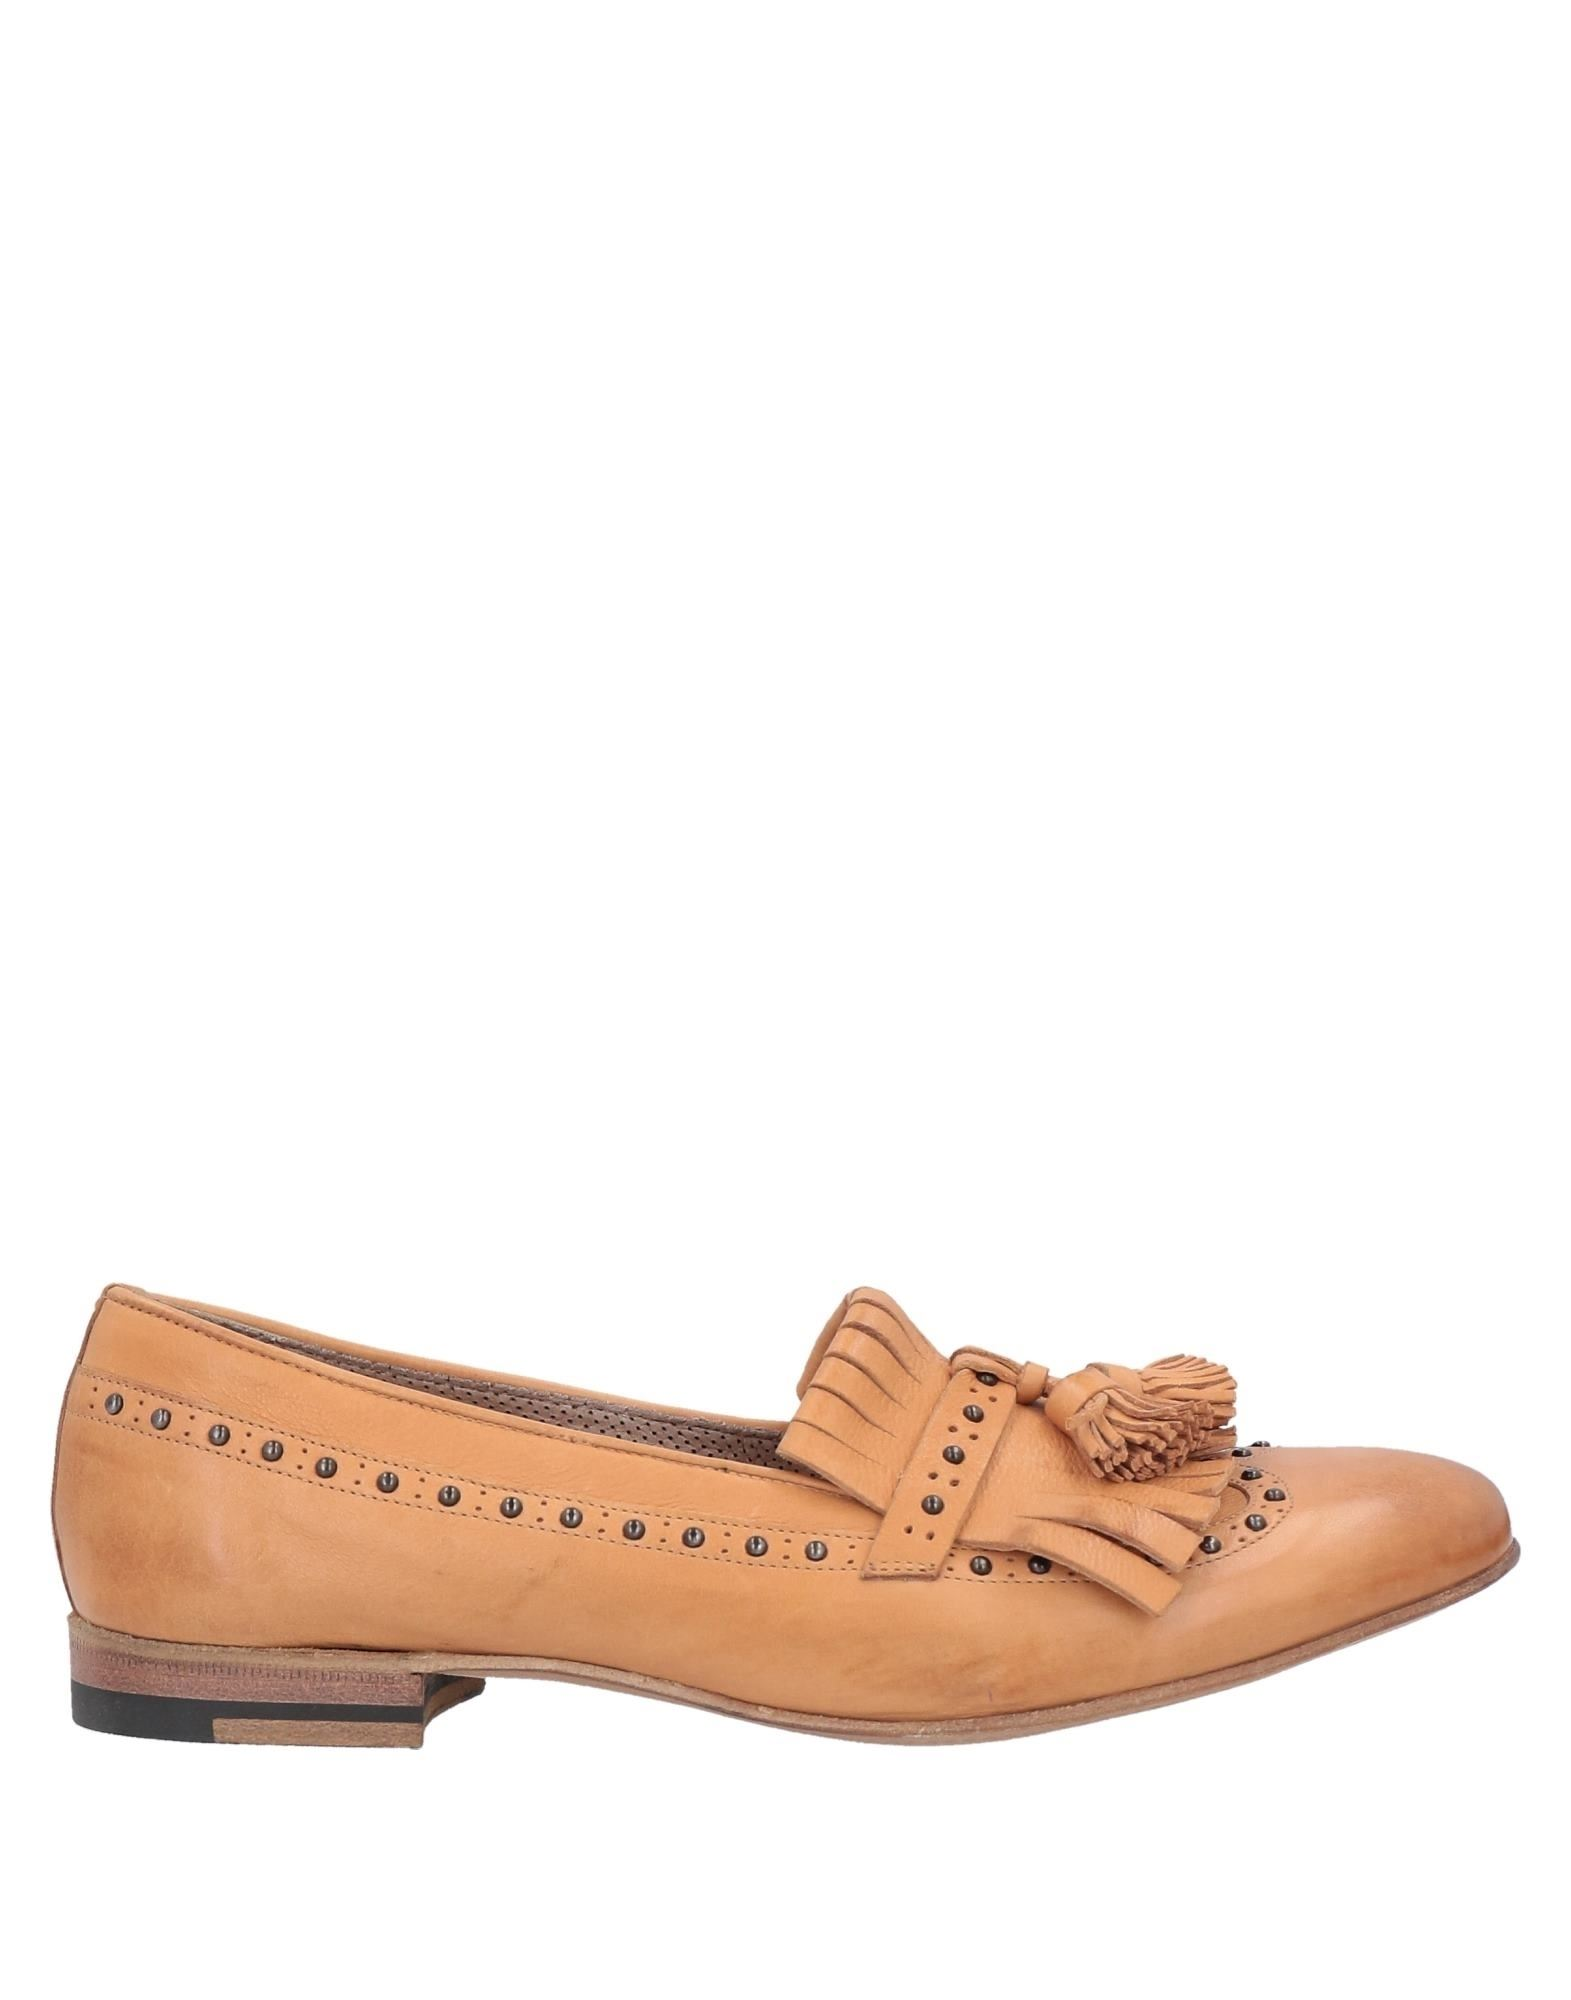 Henderson Baracco Loafers In Camel